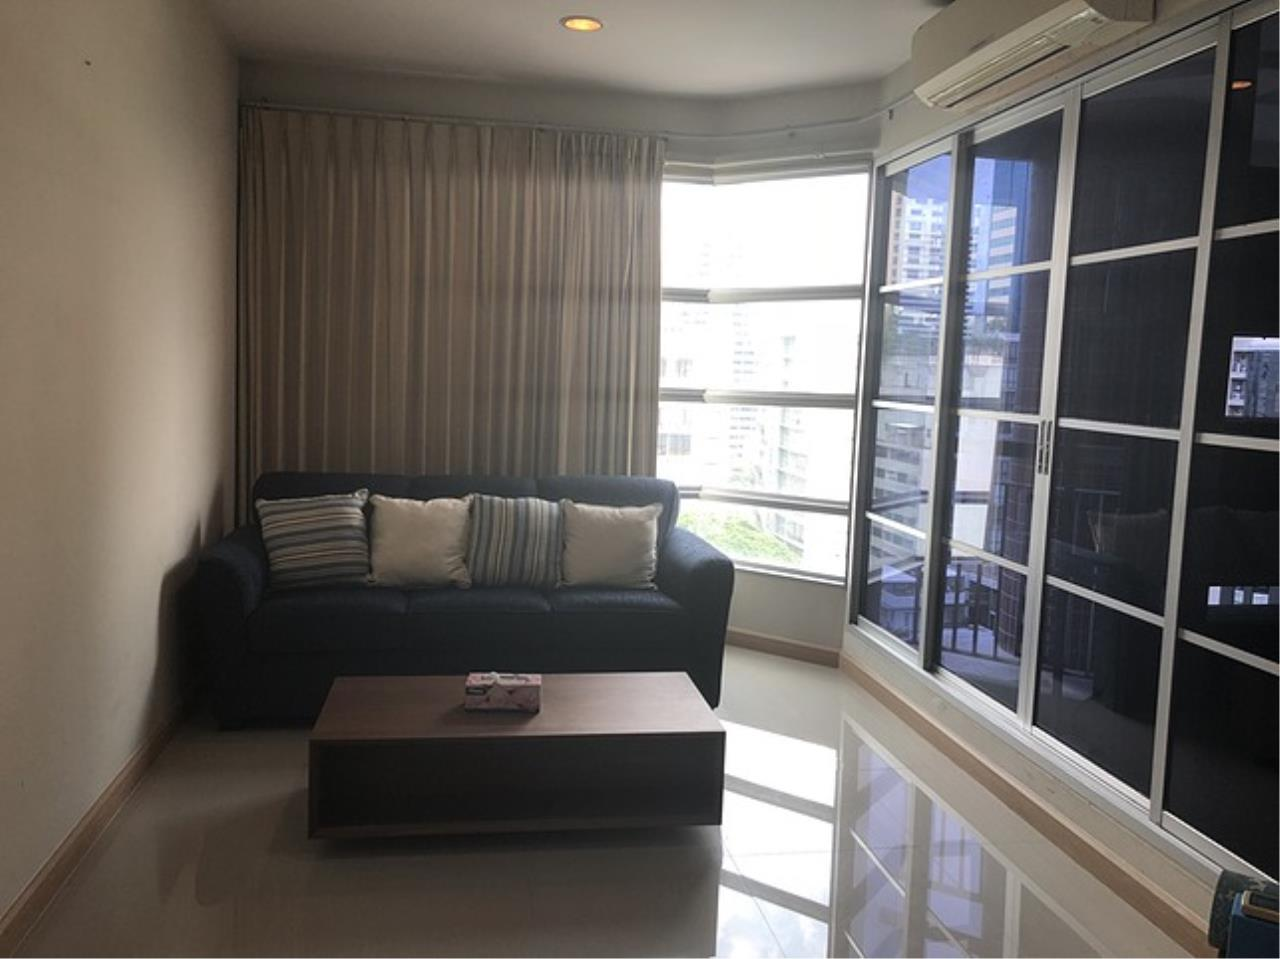 Quality Life Property Agency's R E N T ! CITISMART SUKHUMVIT 18 | 2 BED 2 BATH | 70 SQ. M. 12 FLOOR. 1